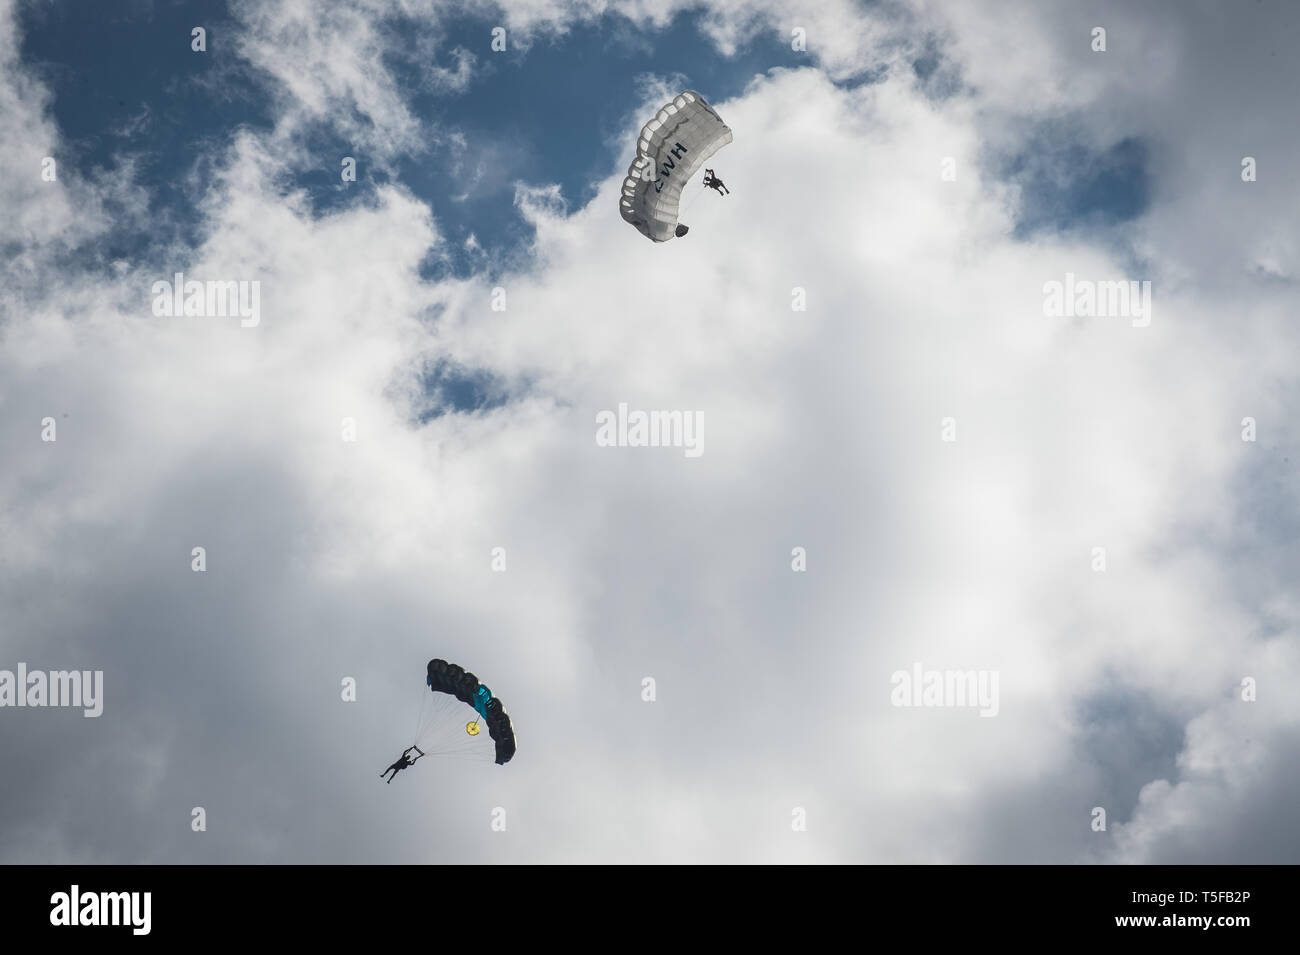 CHORANCHE, FRANCE - AUGUST 22: Two people with a parachute jumping from a cliff in france, Auvergne-rhône-alpes, Choranche, France on August 22, 2015 in Choranche, France. (Photo by Fred Marie/Art in All of Us/Corbis via Getty Images) Stock Photo